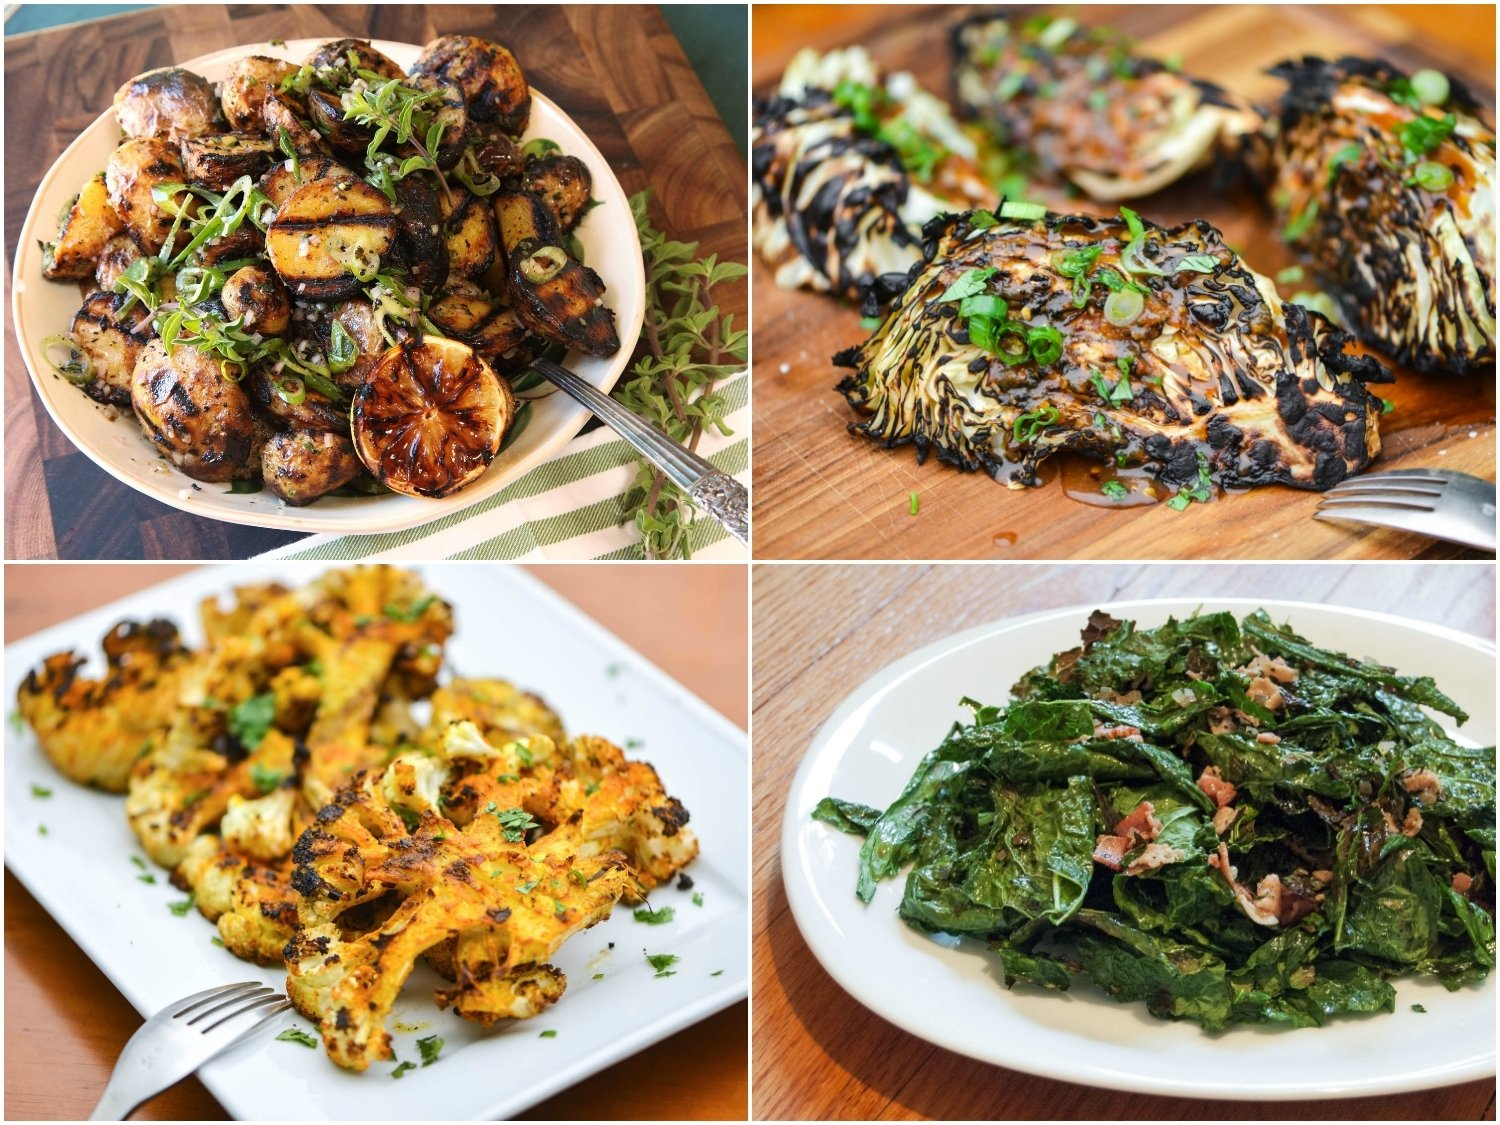 10 Awesome Memorial Day Bbq Menu Ideas 17 recipes for better grilled vegetables at your memorial day